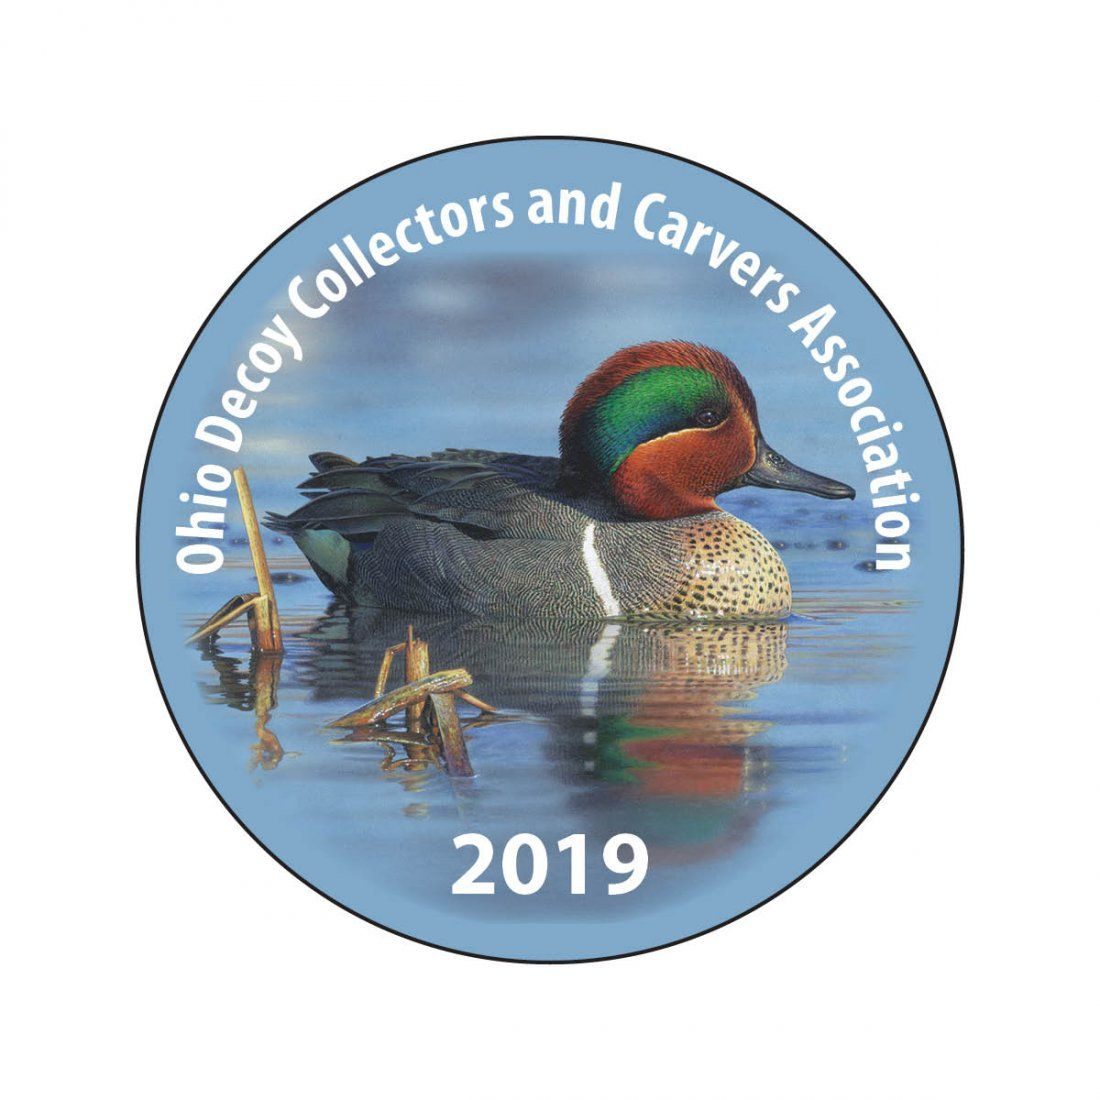 Ohio Decoy Collectors and Carvers Association Waterfowl and Fish Show and Sale